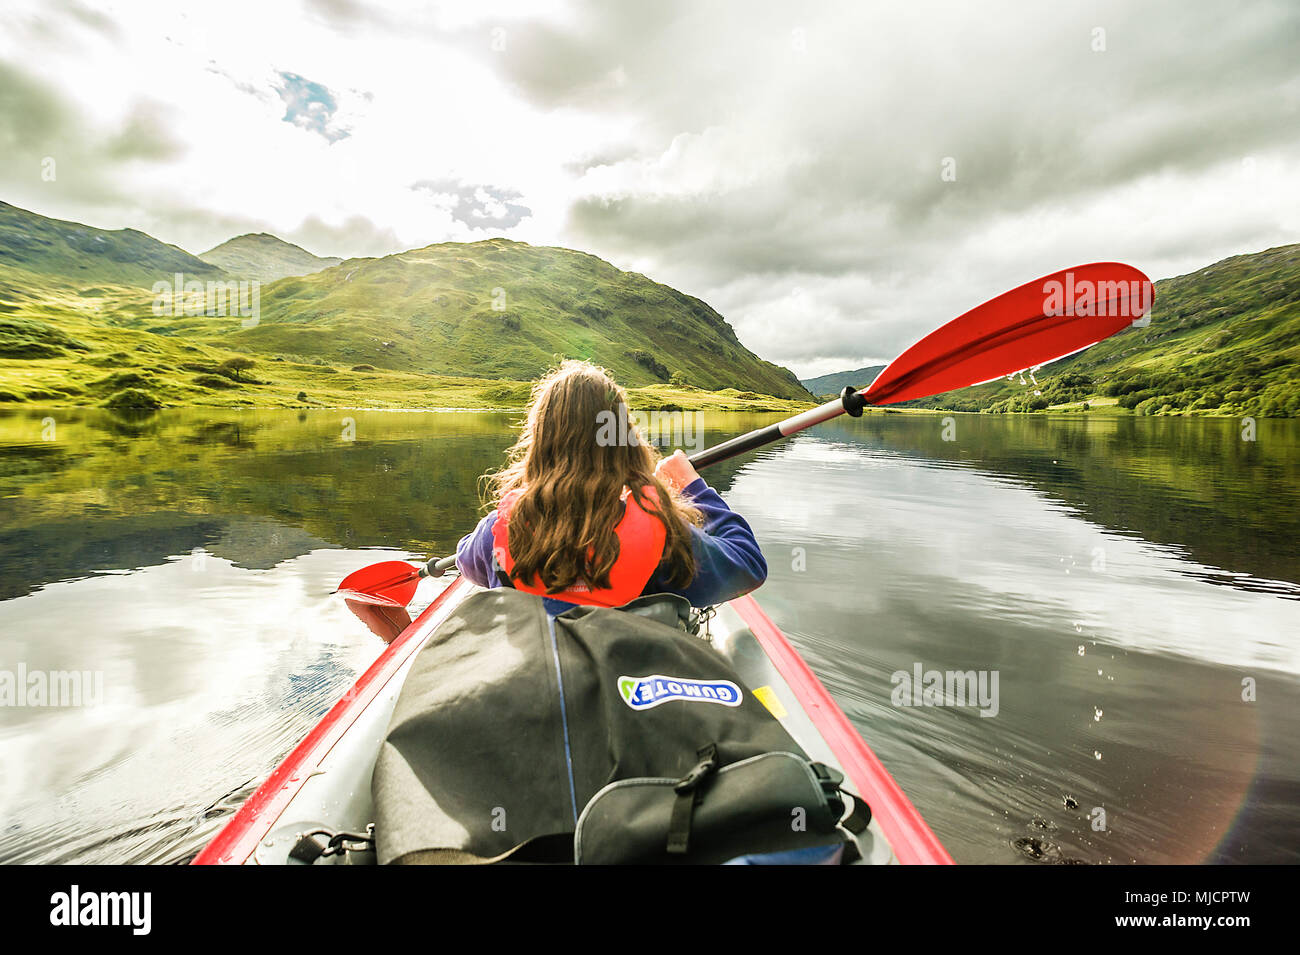 Girl paddles with the kayak on the Loch Eilt, Glenfinnan, Highland, Scotland, - Stock Image